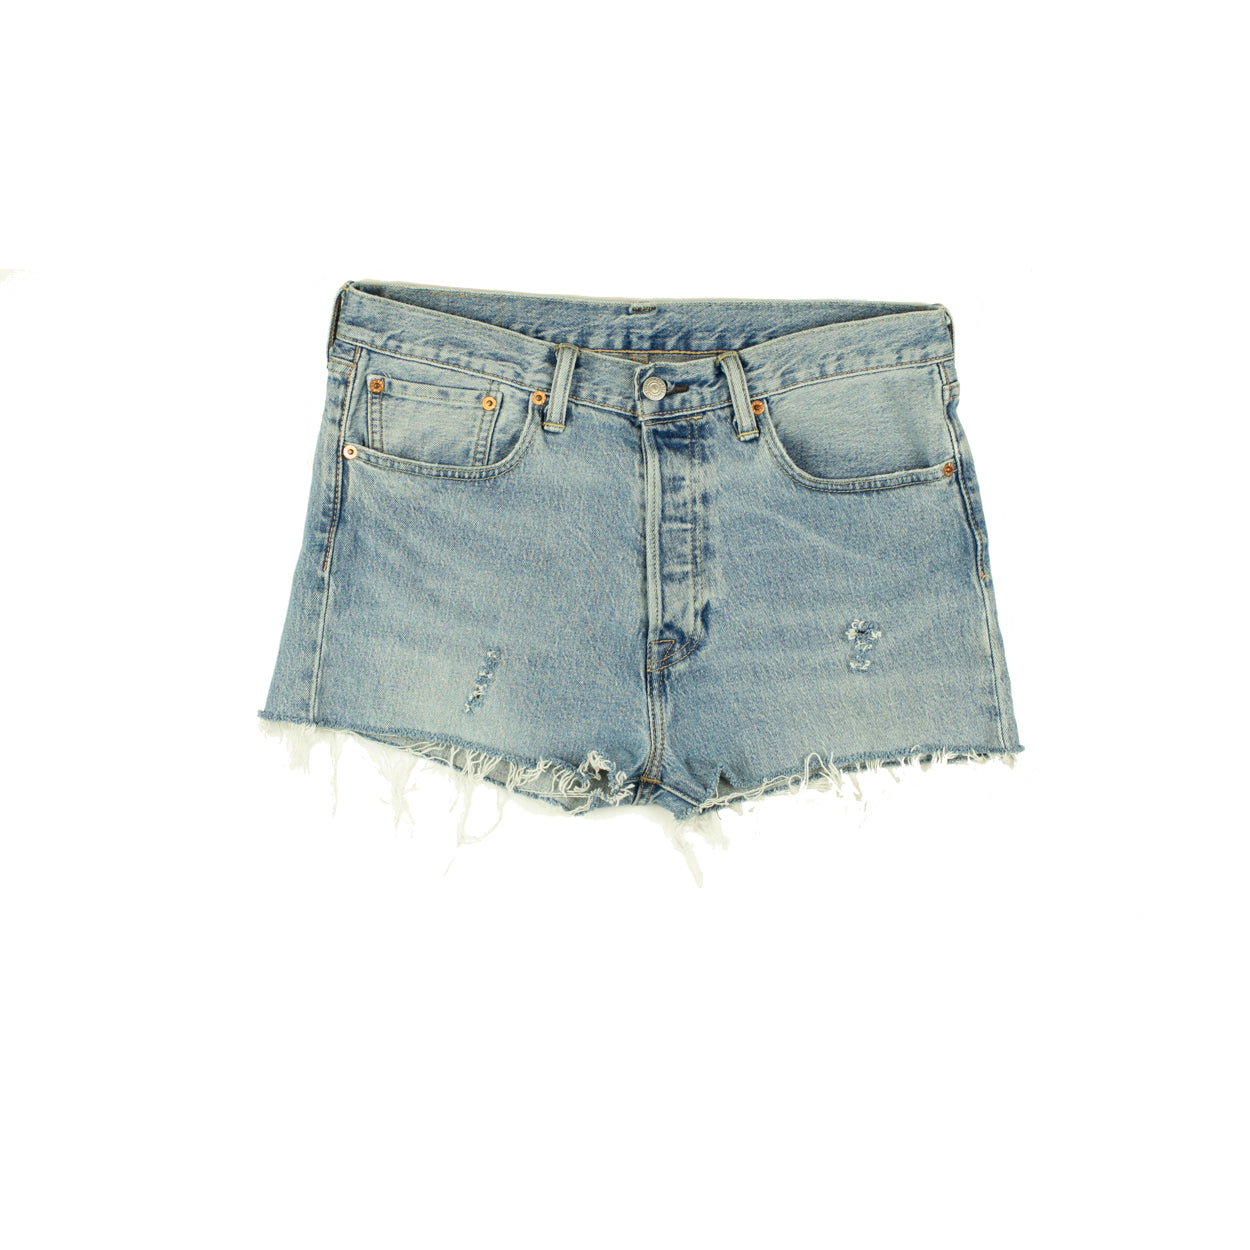 Vintage Denim Cut offs (29)